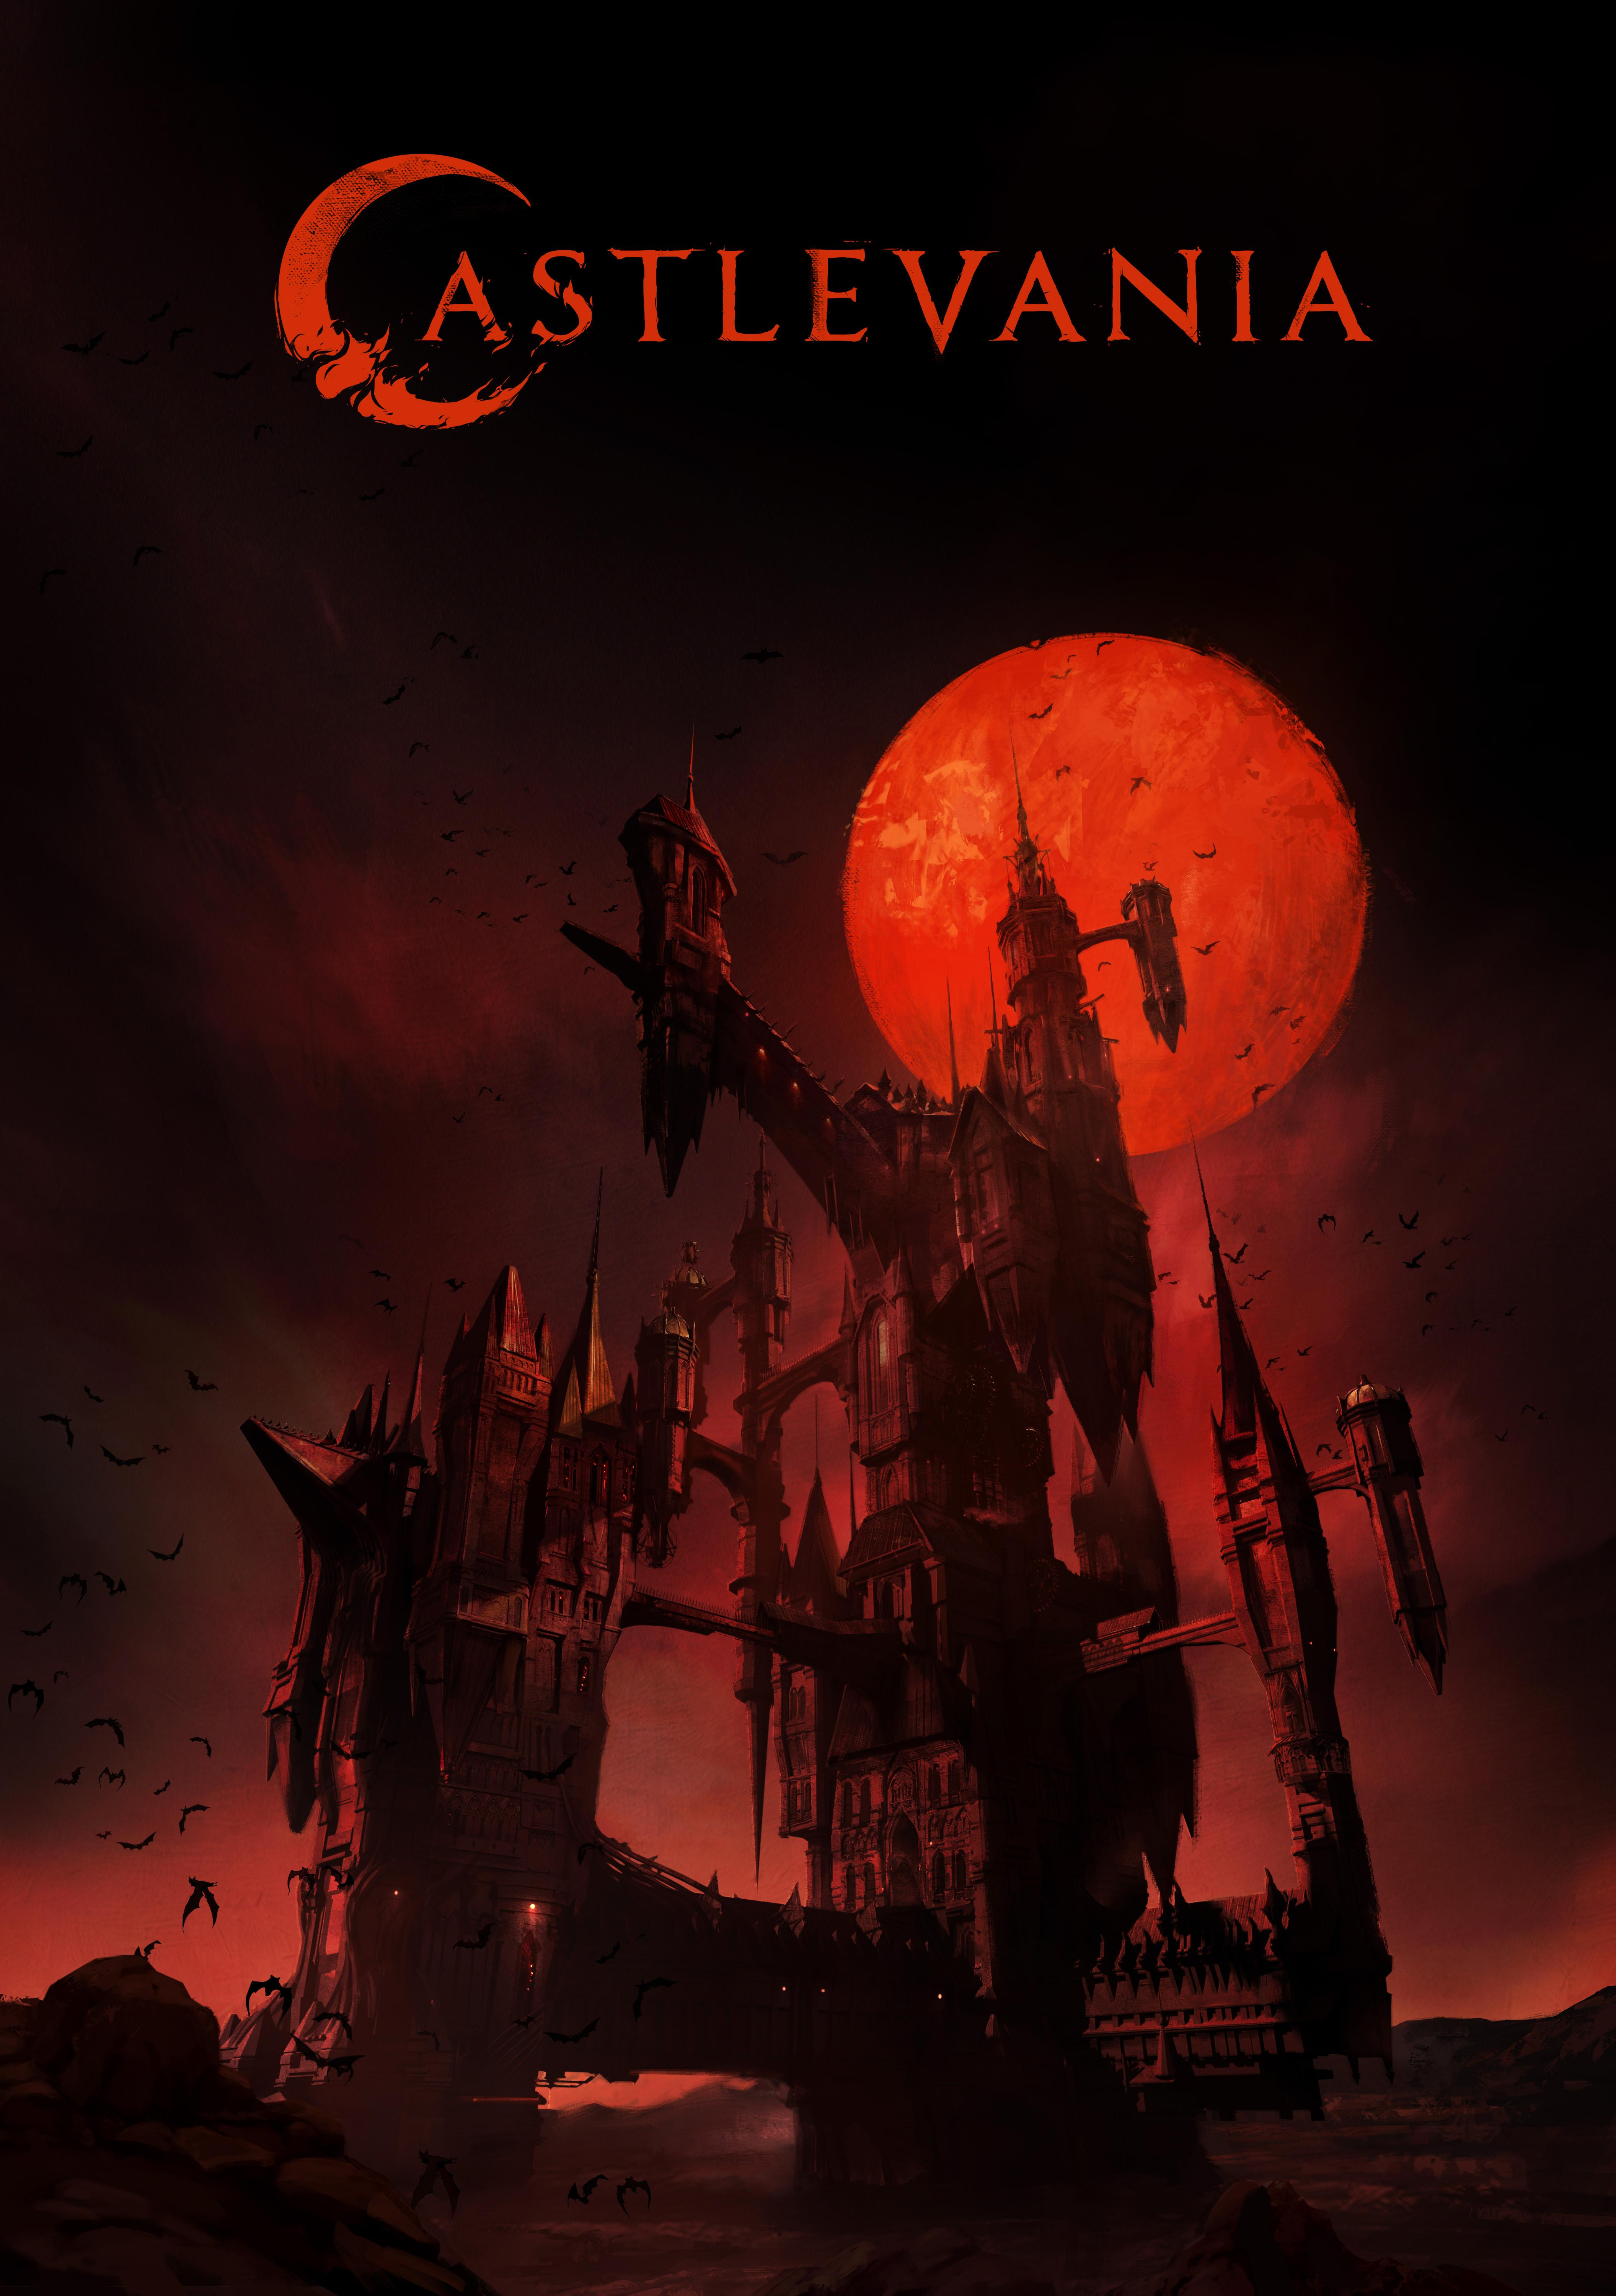 6souls entertainment that castlevania great news season going years broke producing super im breaking producer eventually story characters dredd shankar already propaganda decade after satirical will flip head sub-genre vampire dark homies were with mini-series fred seibert its klonde kevin violent being right project have 2017 needs doing netflix coming series